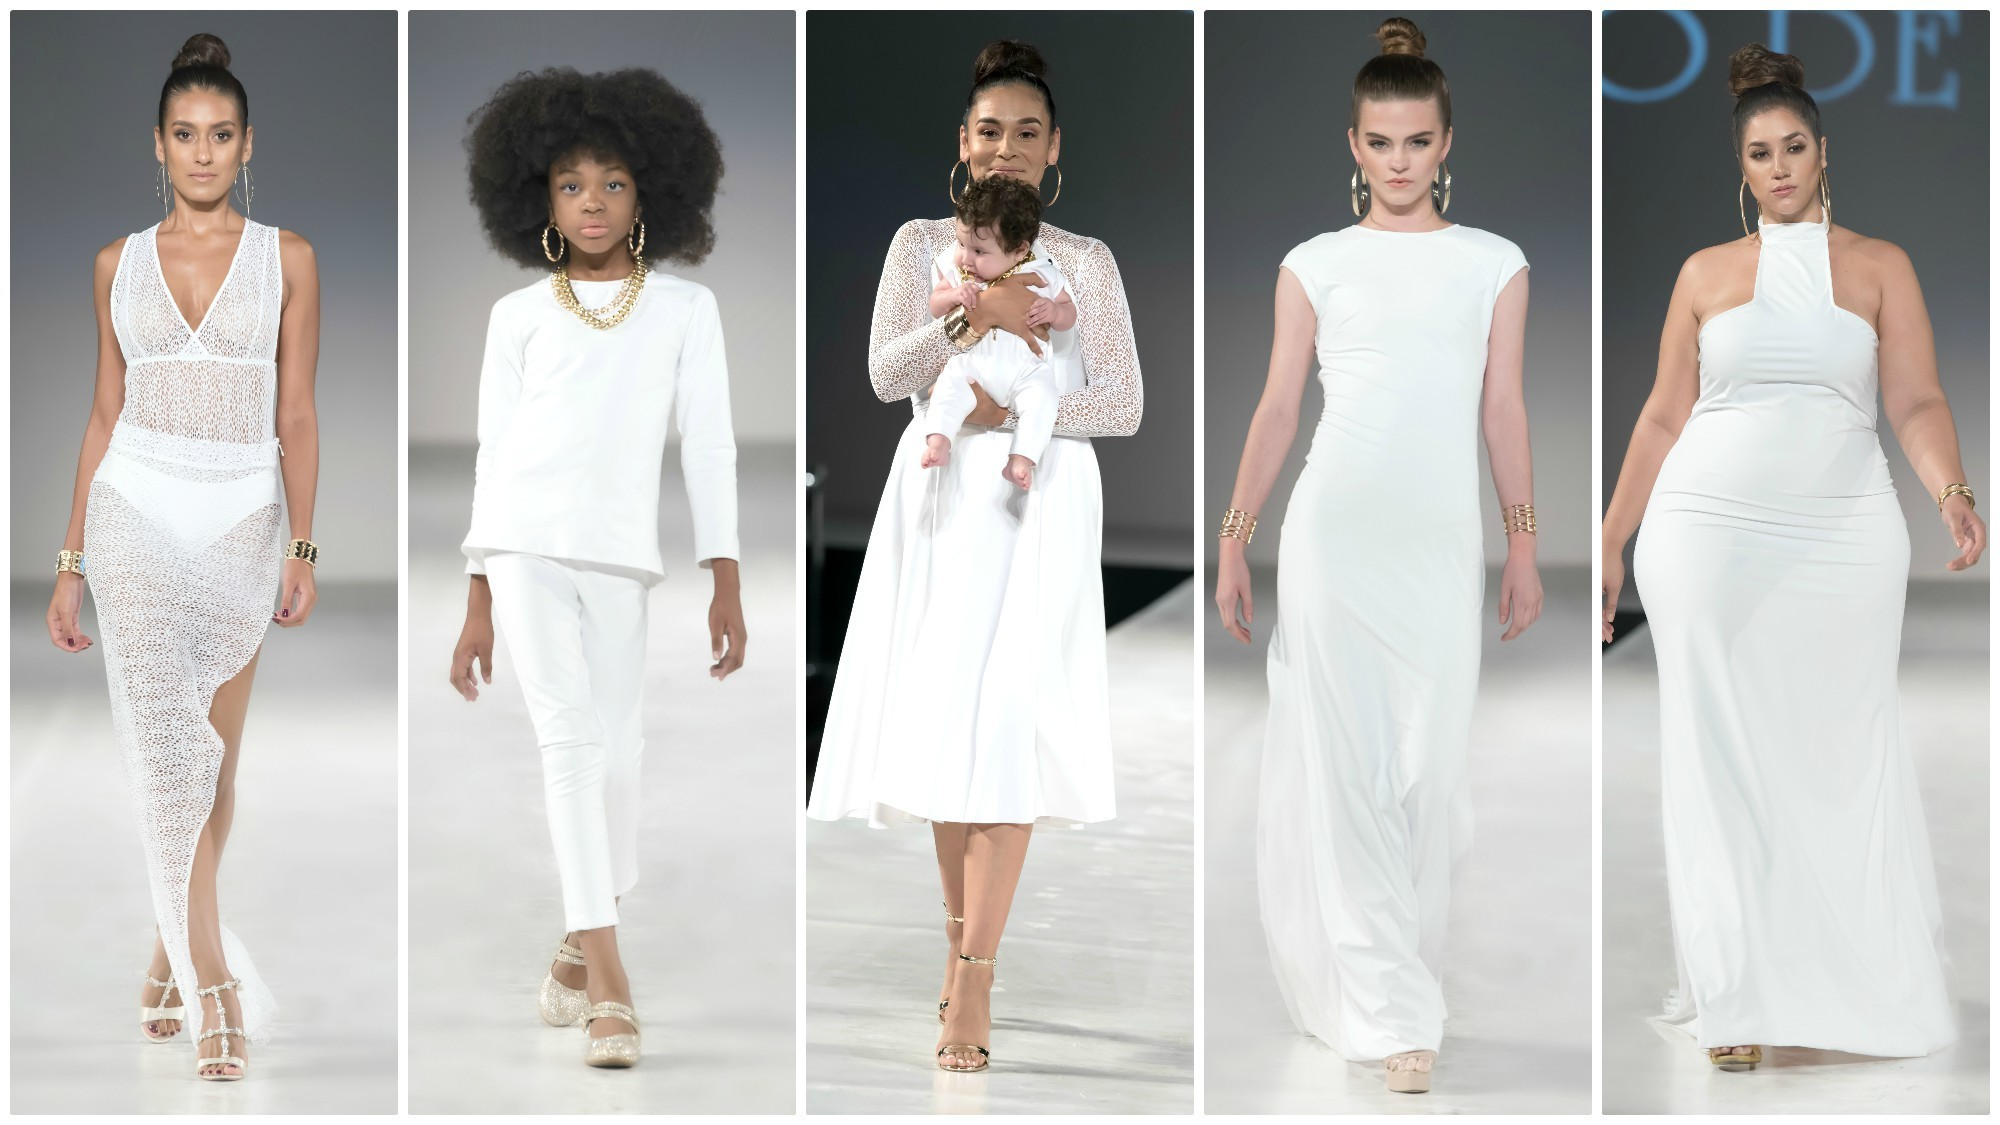 Looks from Mario De La Torre's spring/summer 2018 collection.